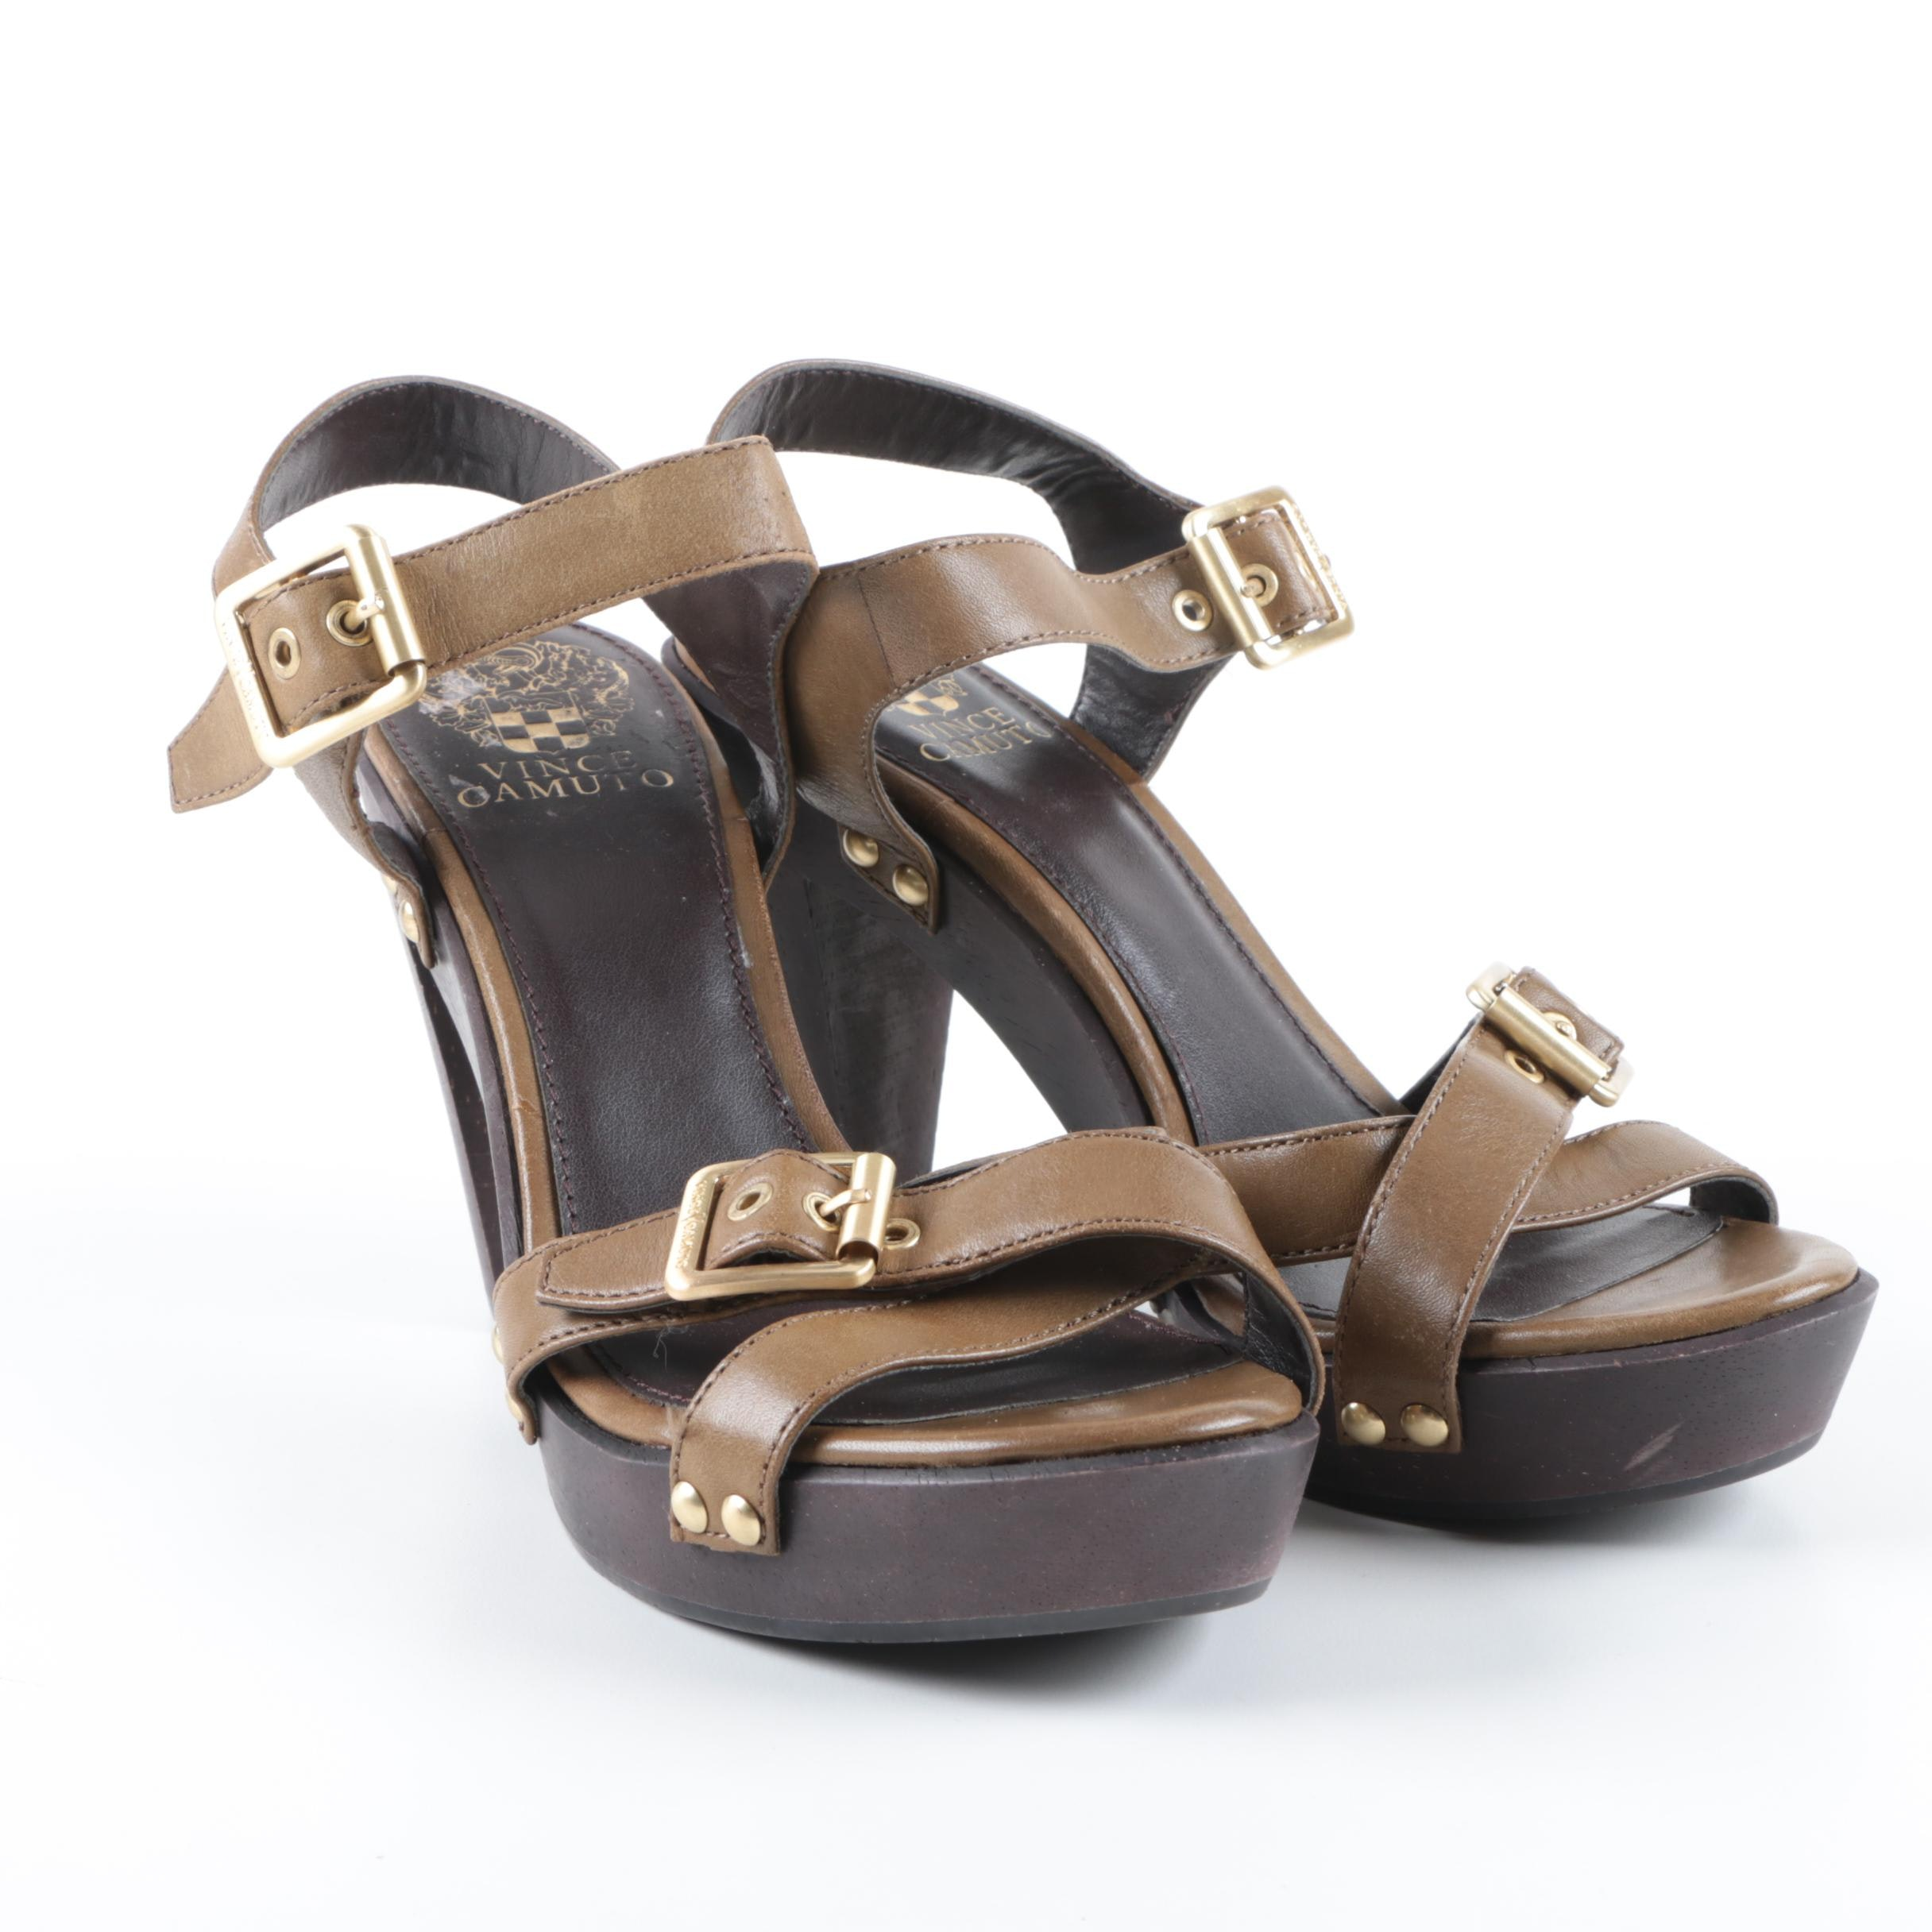 Women's Vince Camuto Brown Leather Platform Sandals With Wooden High Heels